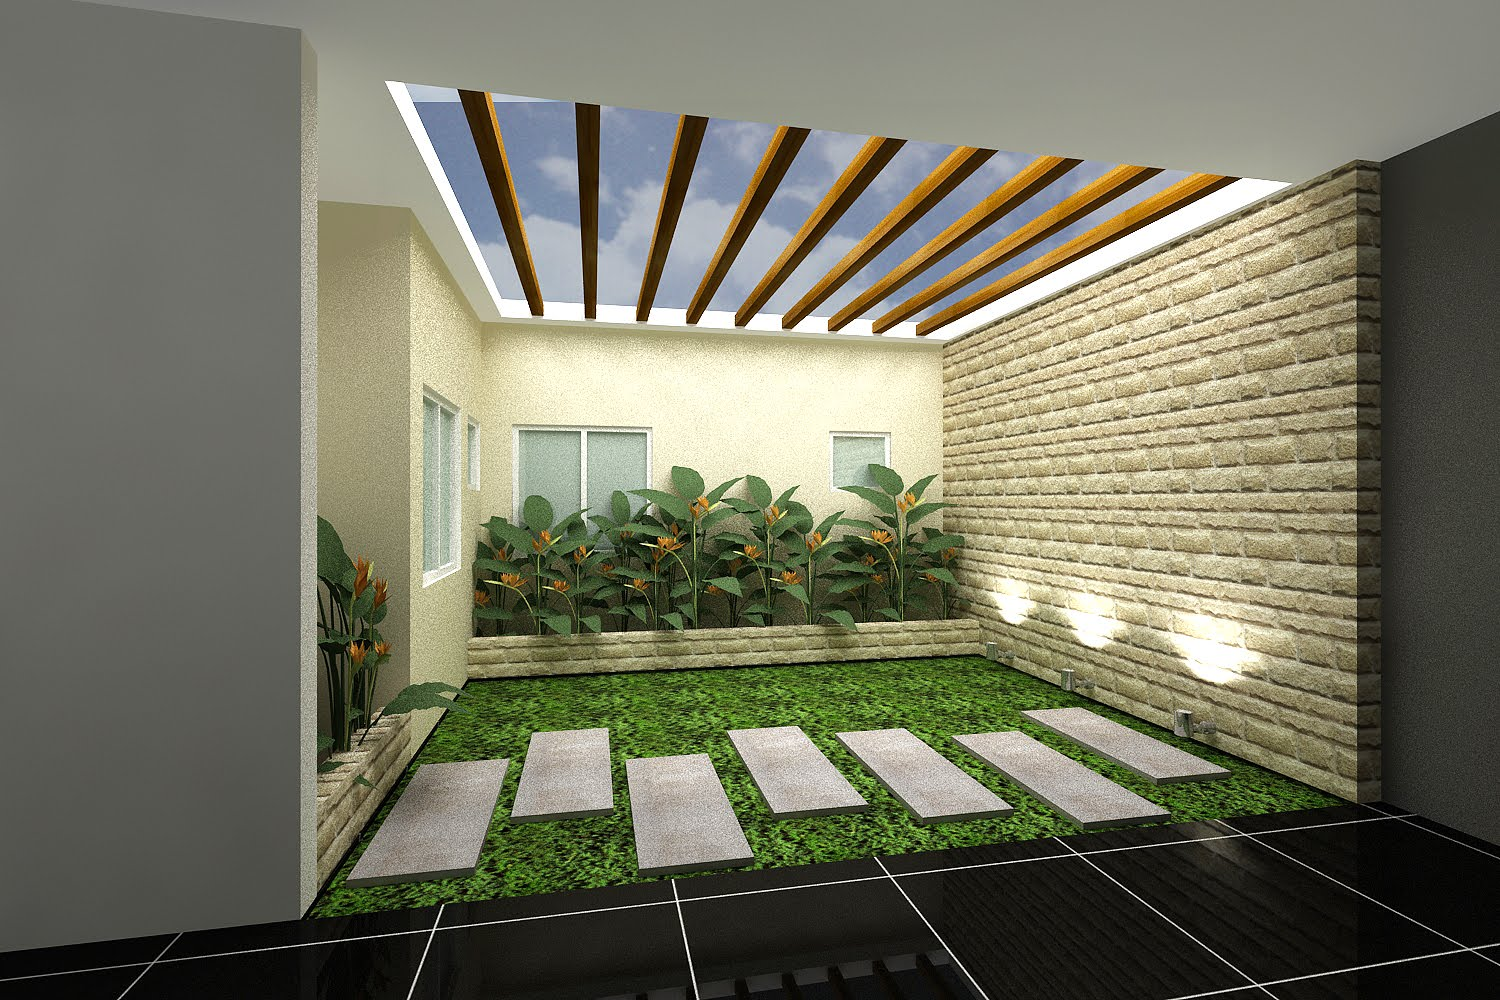 Indoor Courtyard Of Home And Garden Catalog Idea With Skylight And Concrete  Walkway And Grassy Meadow